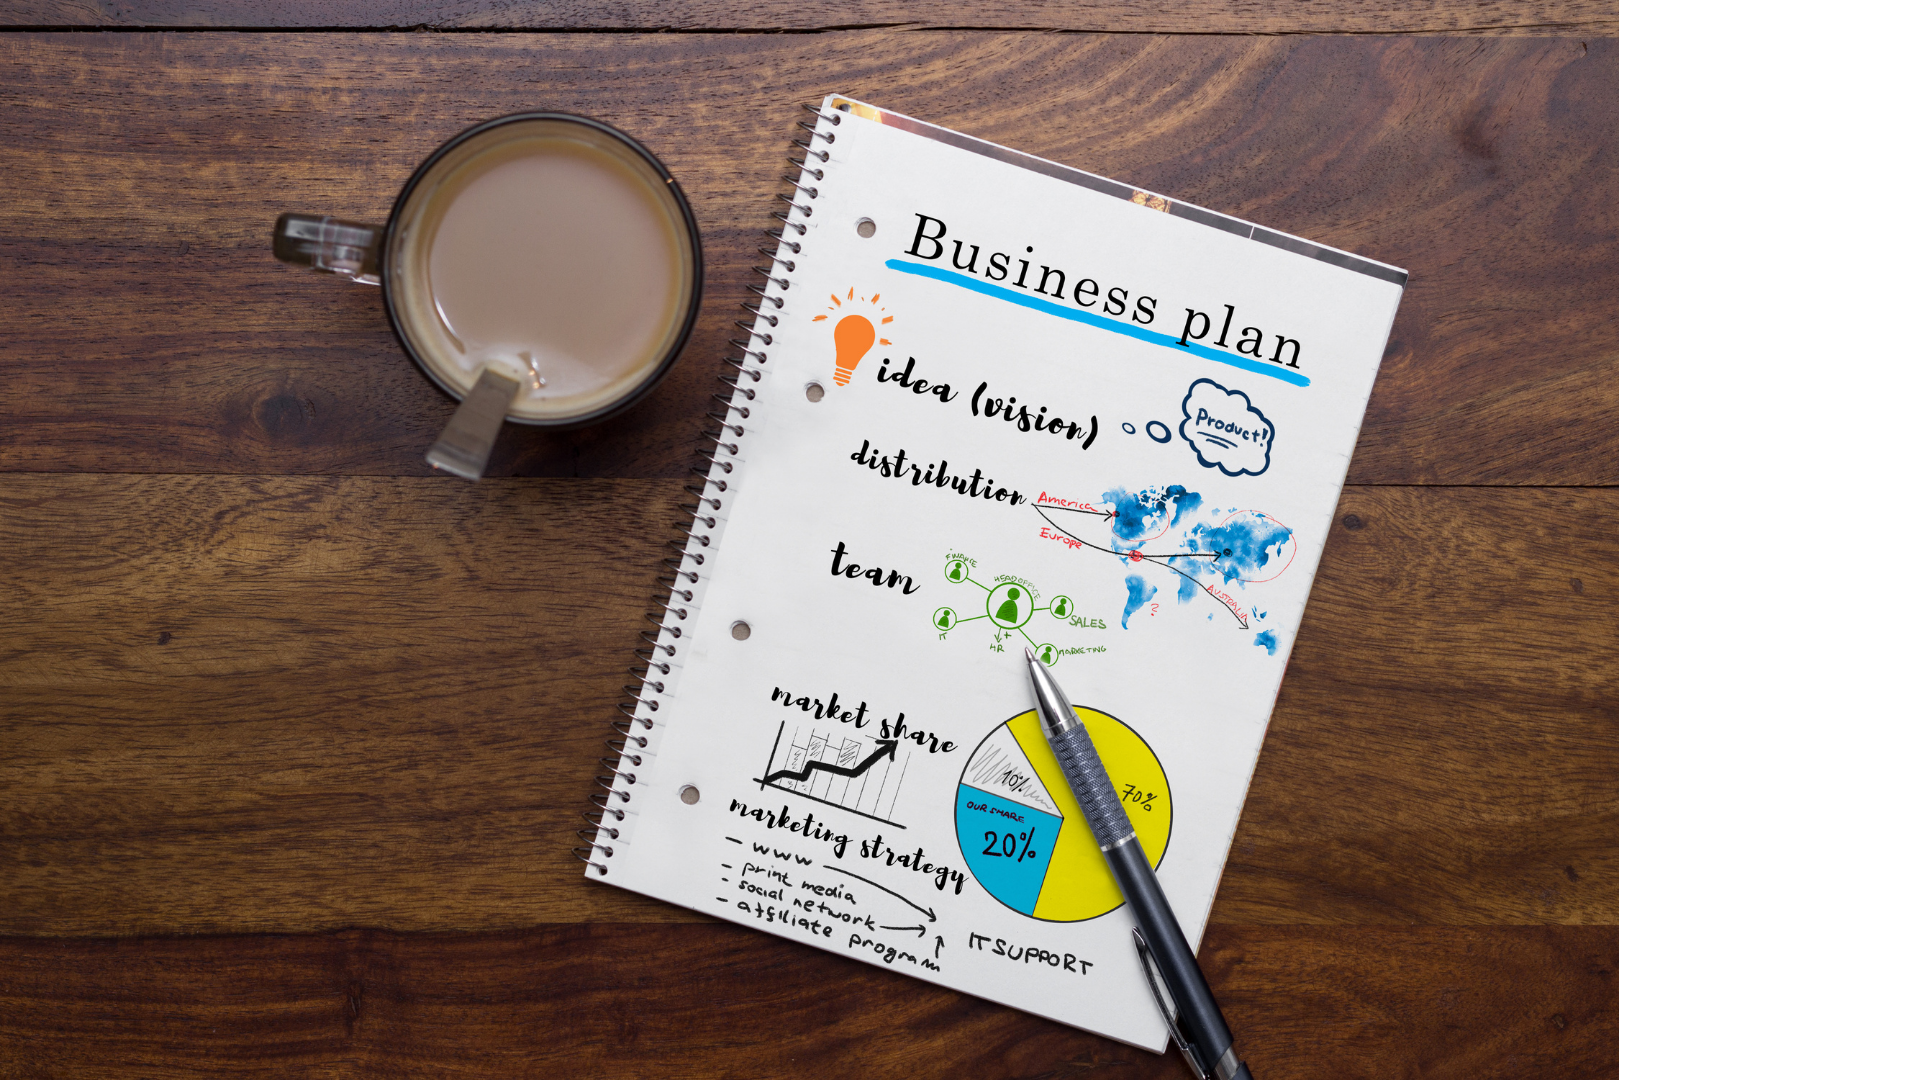 Planning Your Fashion Business Plan 2 of 3